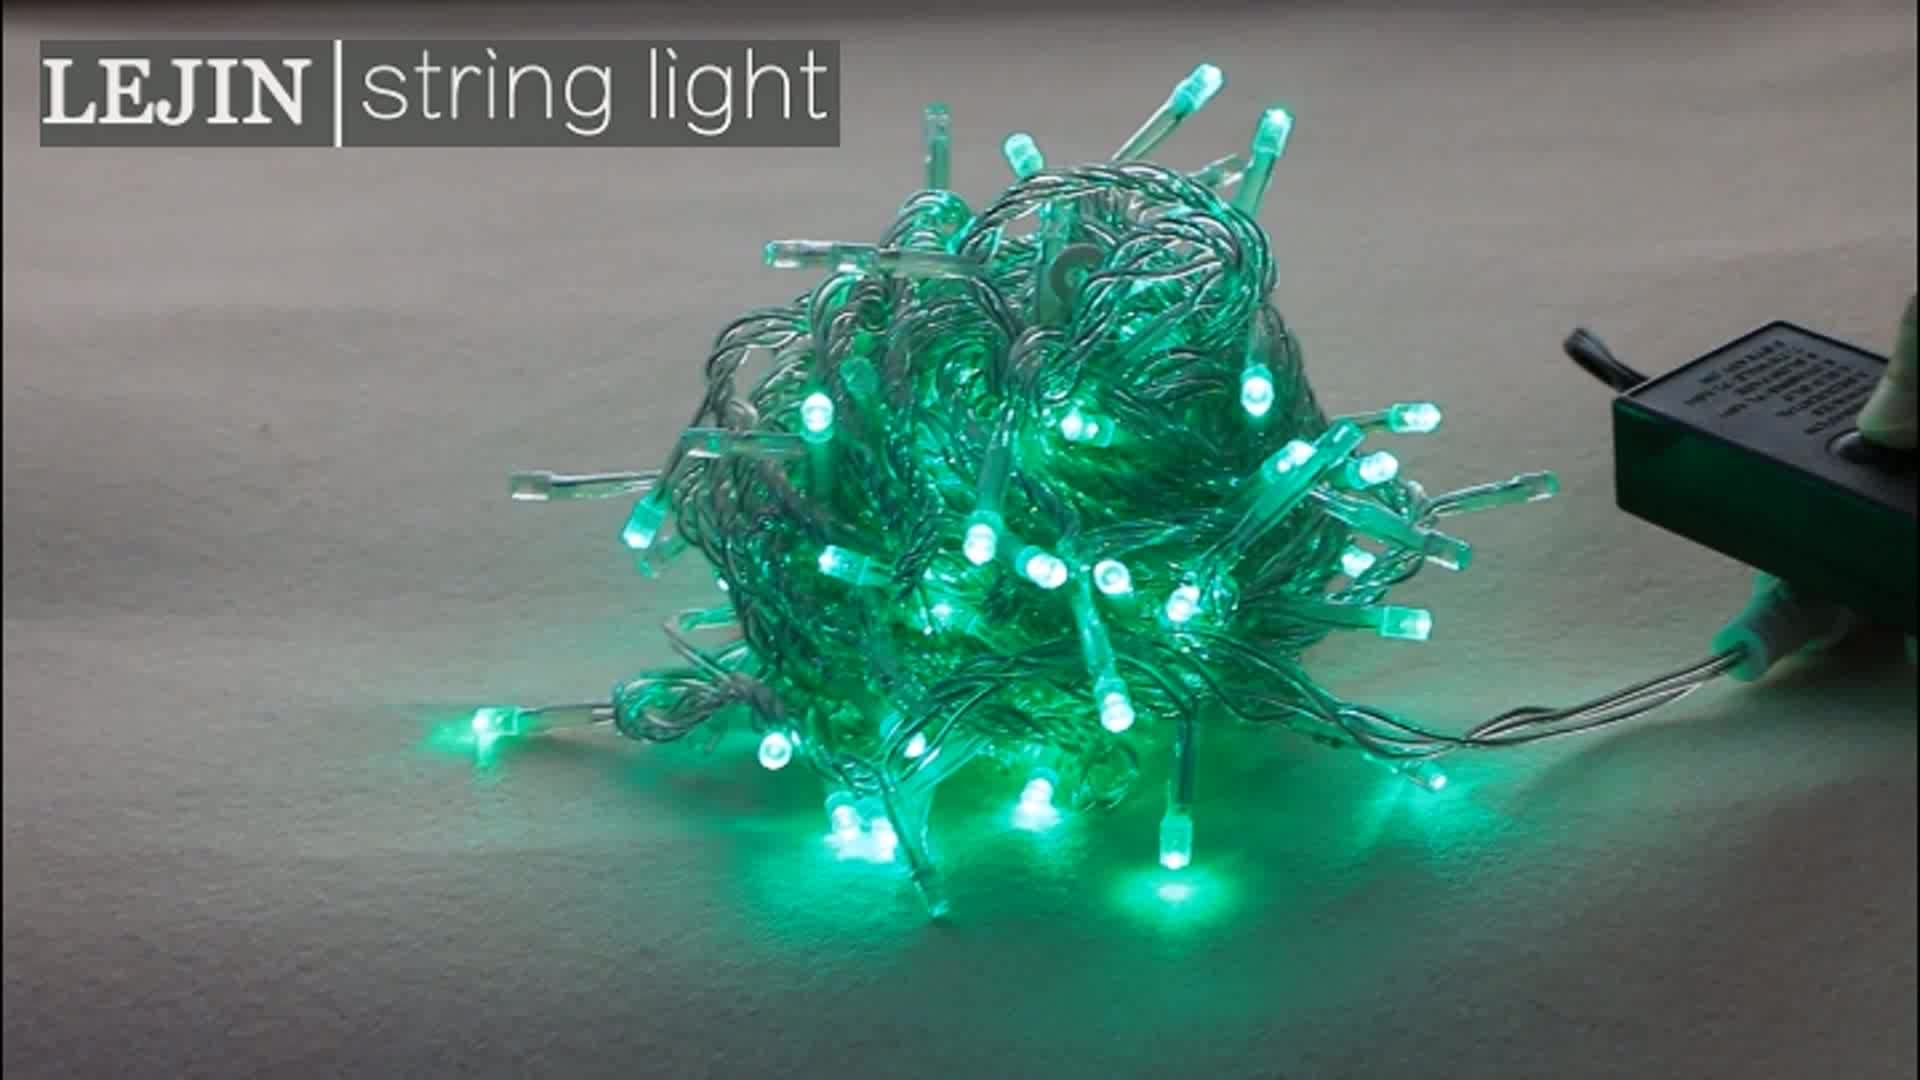 String Lights For Christmas Village : New Product For Christmas Chain Led String Light - Buy Christmas Village Led String Lights,Led ...